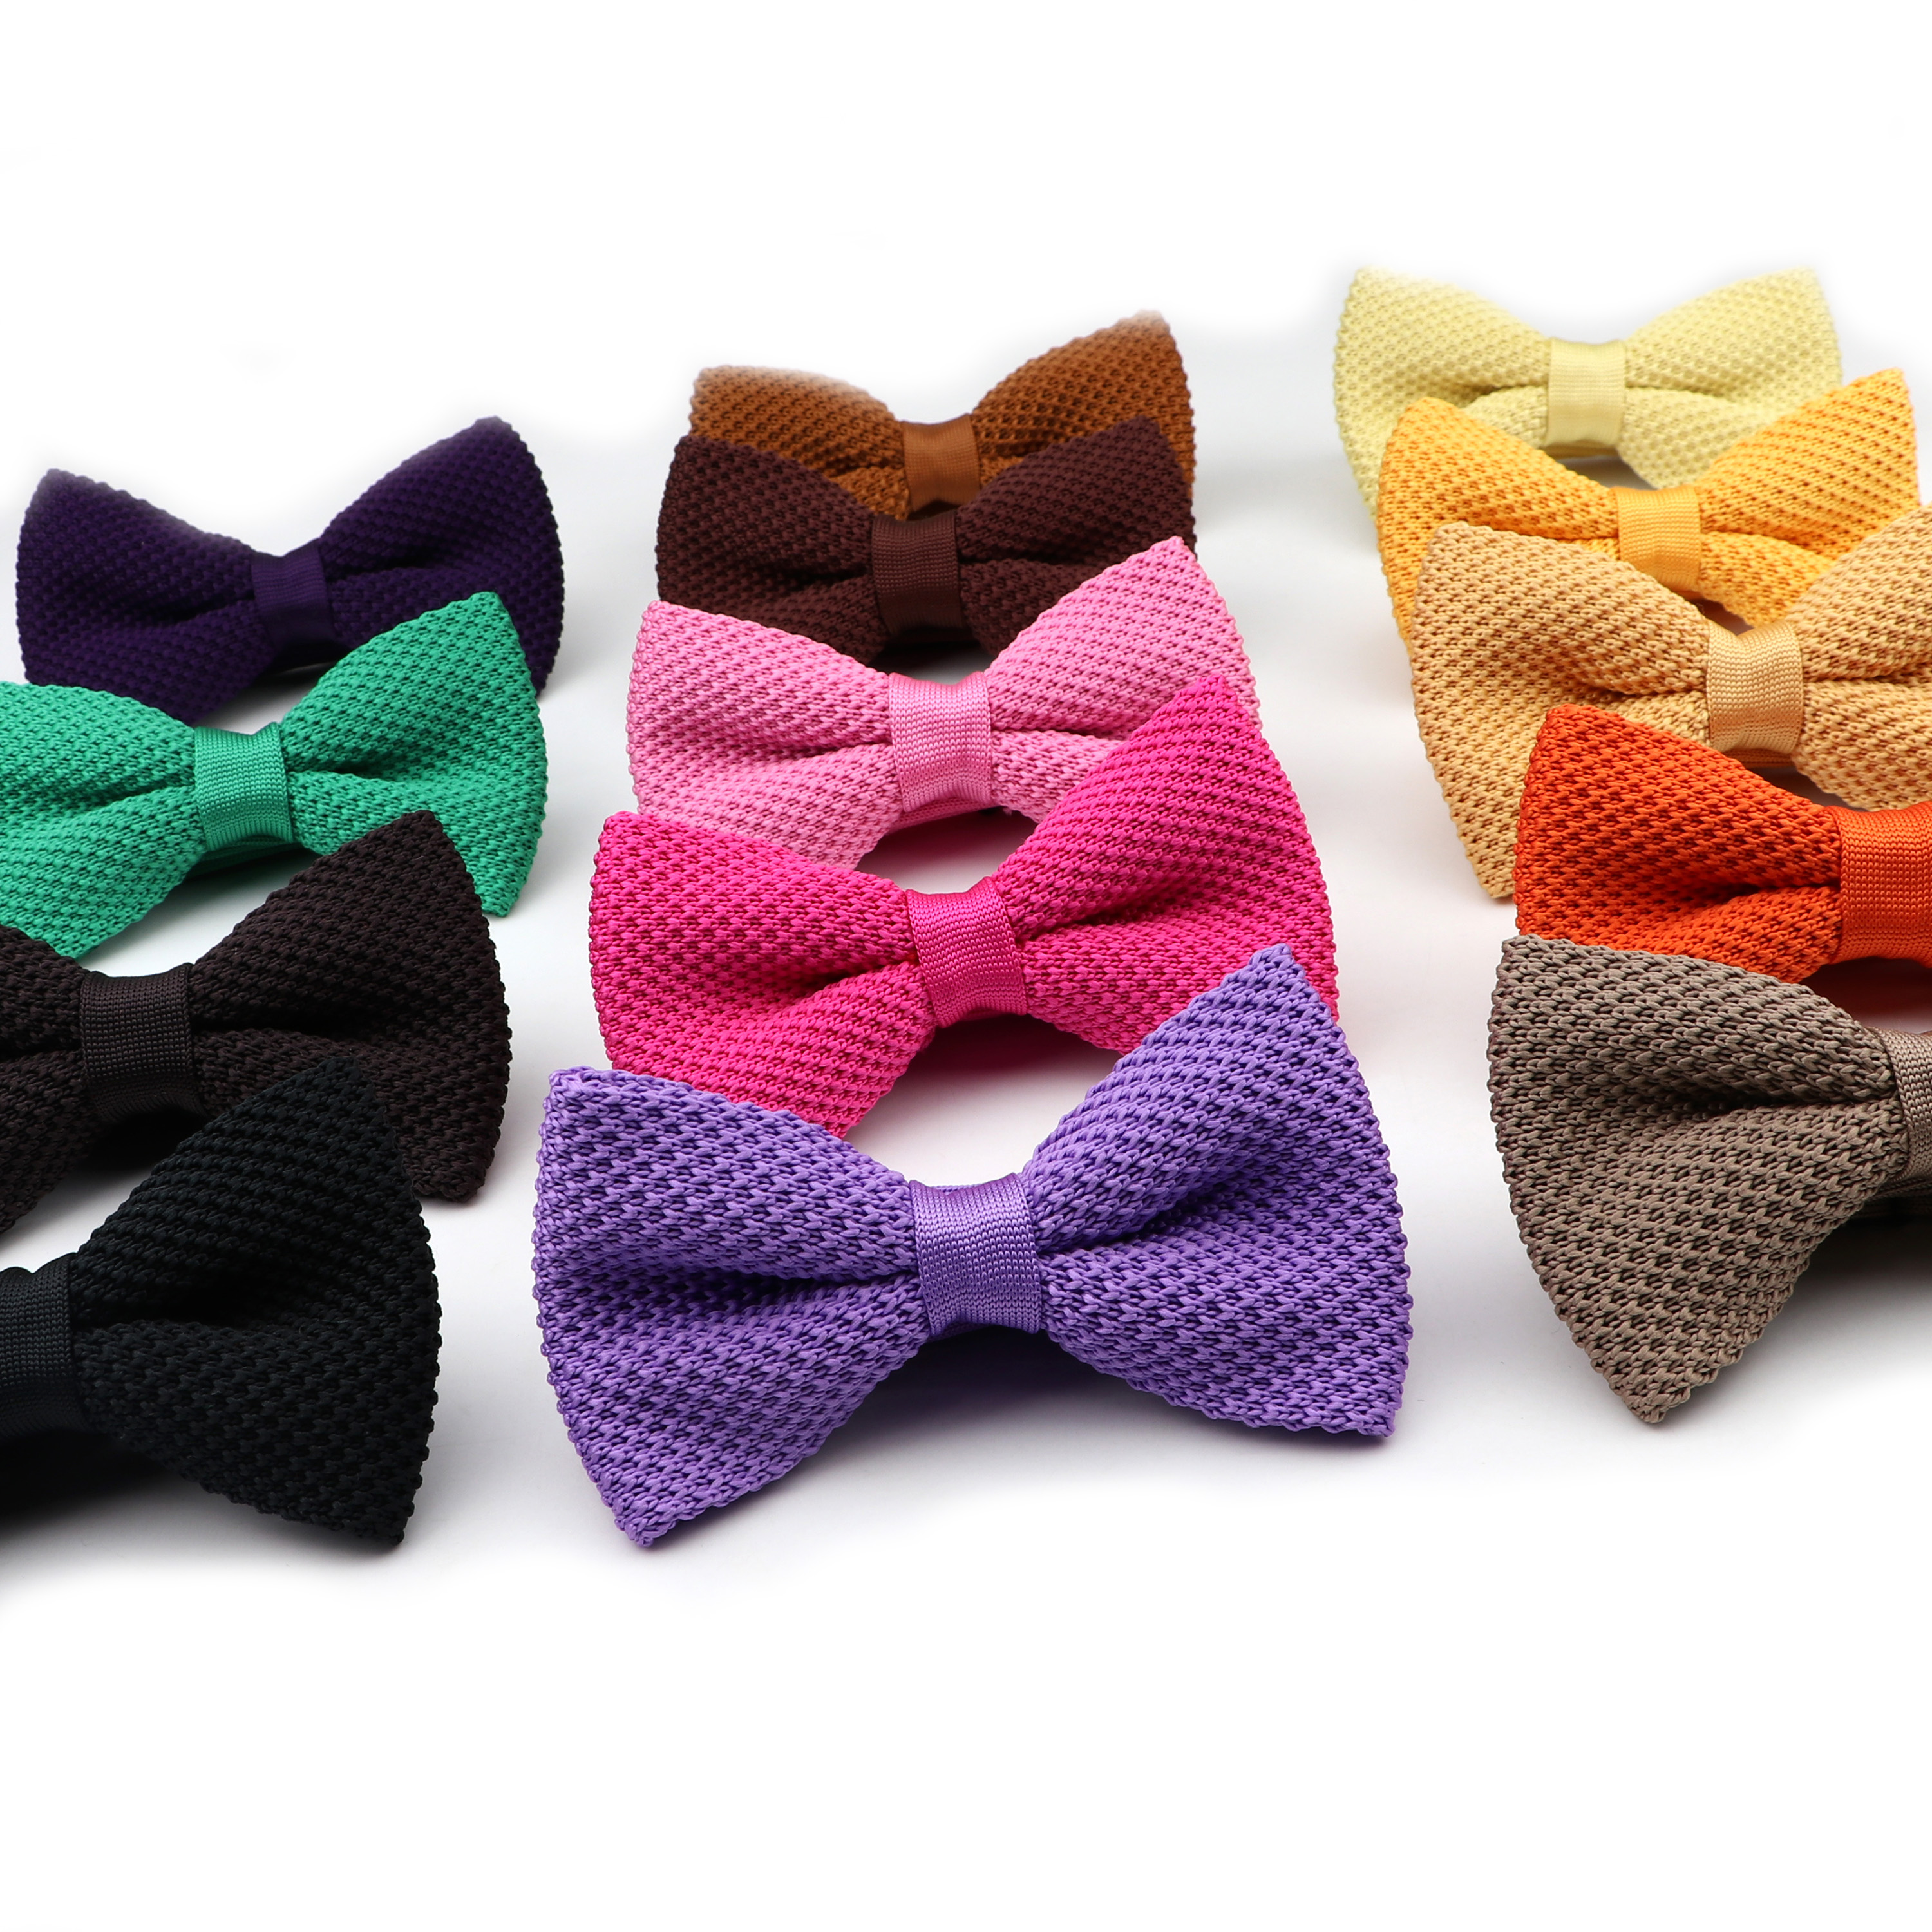 Solid Color Single Deck Women Knitted Bowtie Leisure Fashion Adjustable Butterfly Woven Designer Knitting Dress Knit Bow Tie